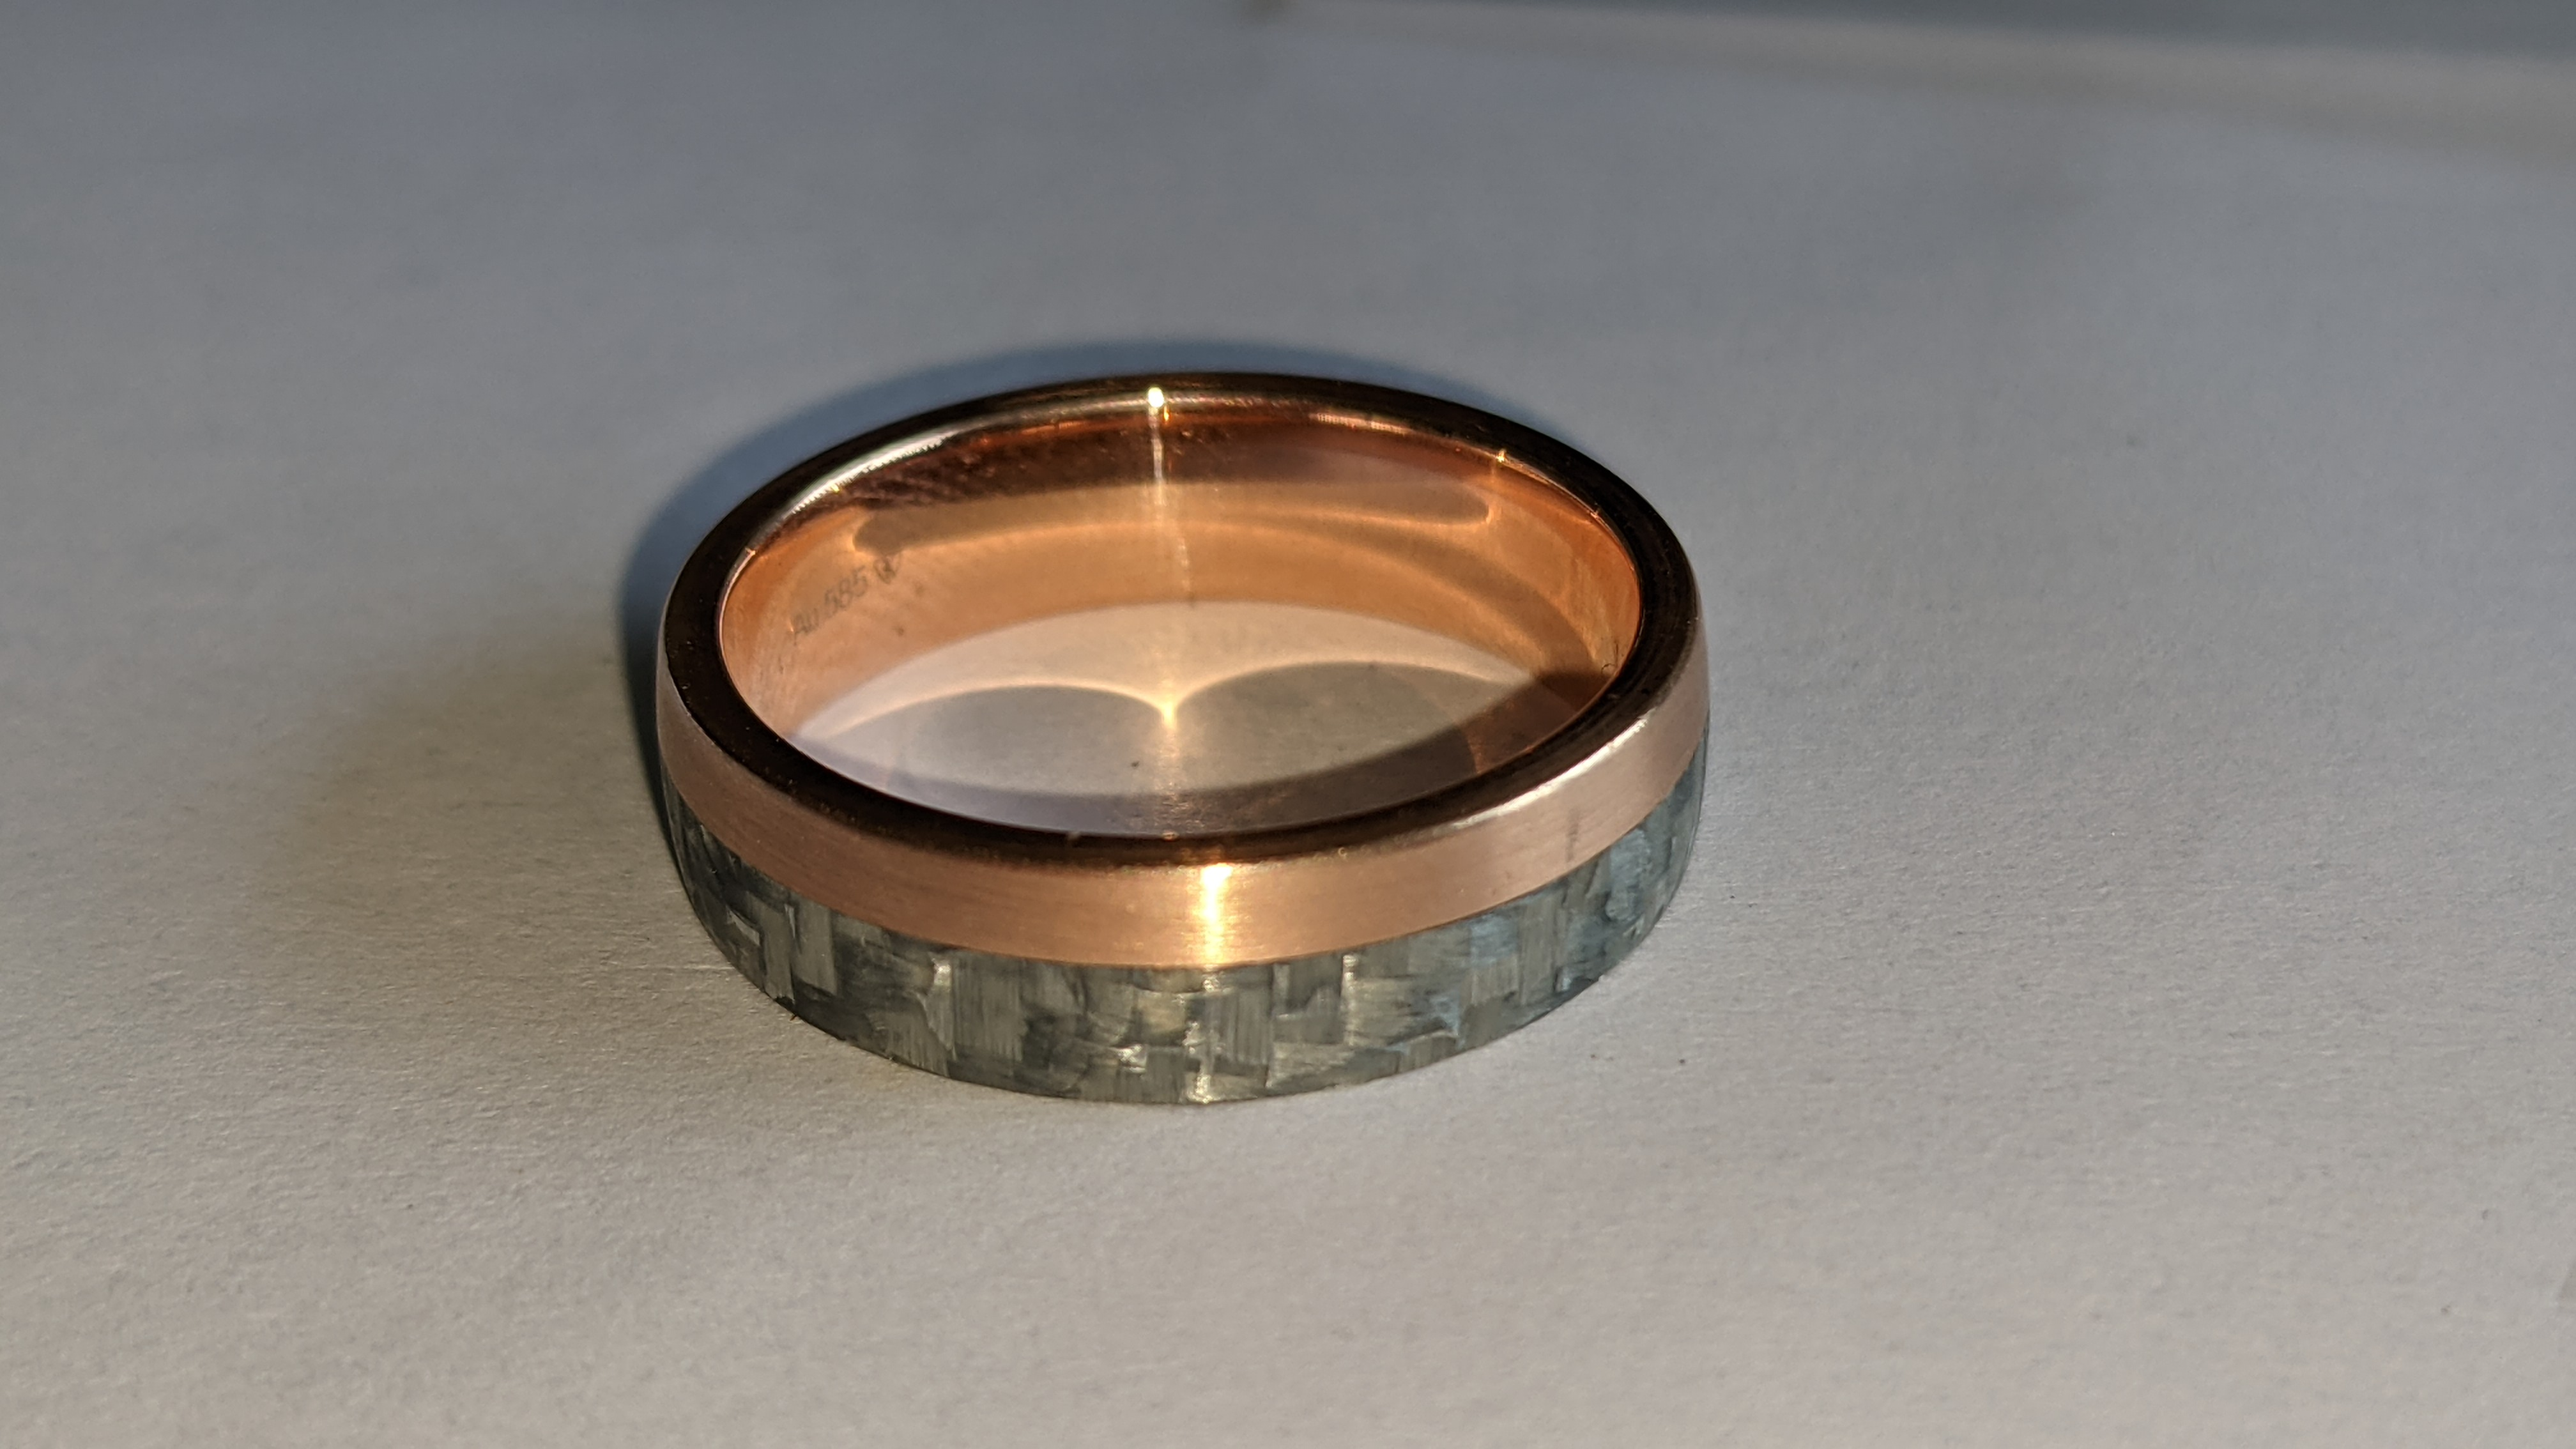 Carbon & 14ct rose gold ring RRP £705 - Image 6 of 13